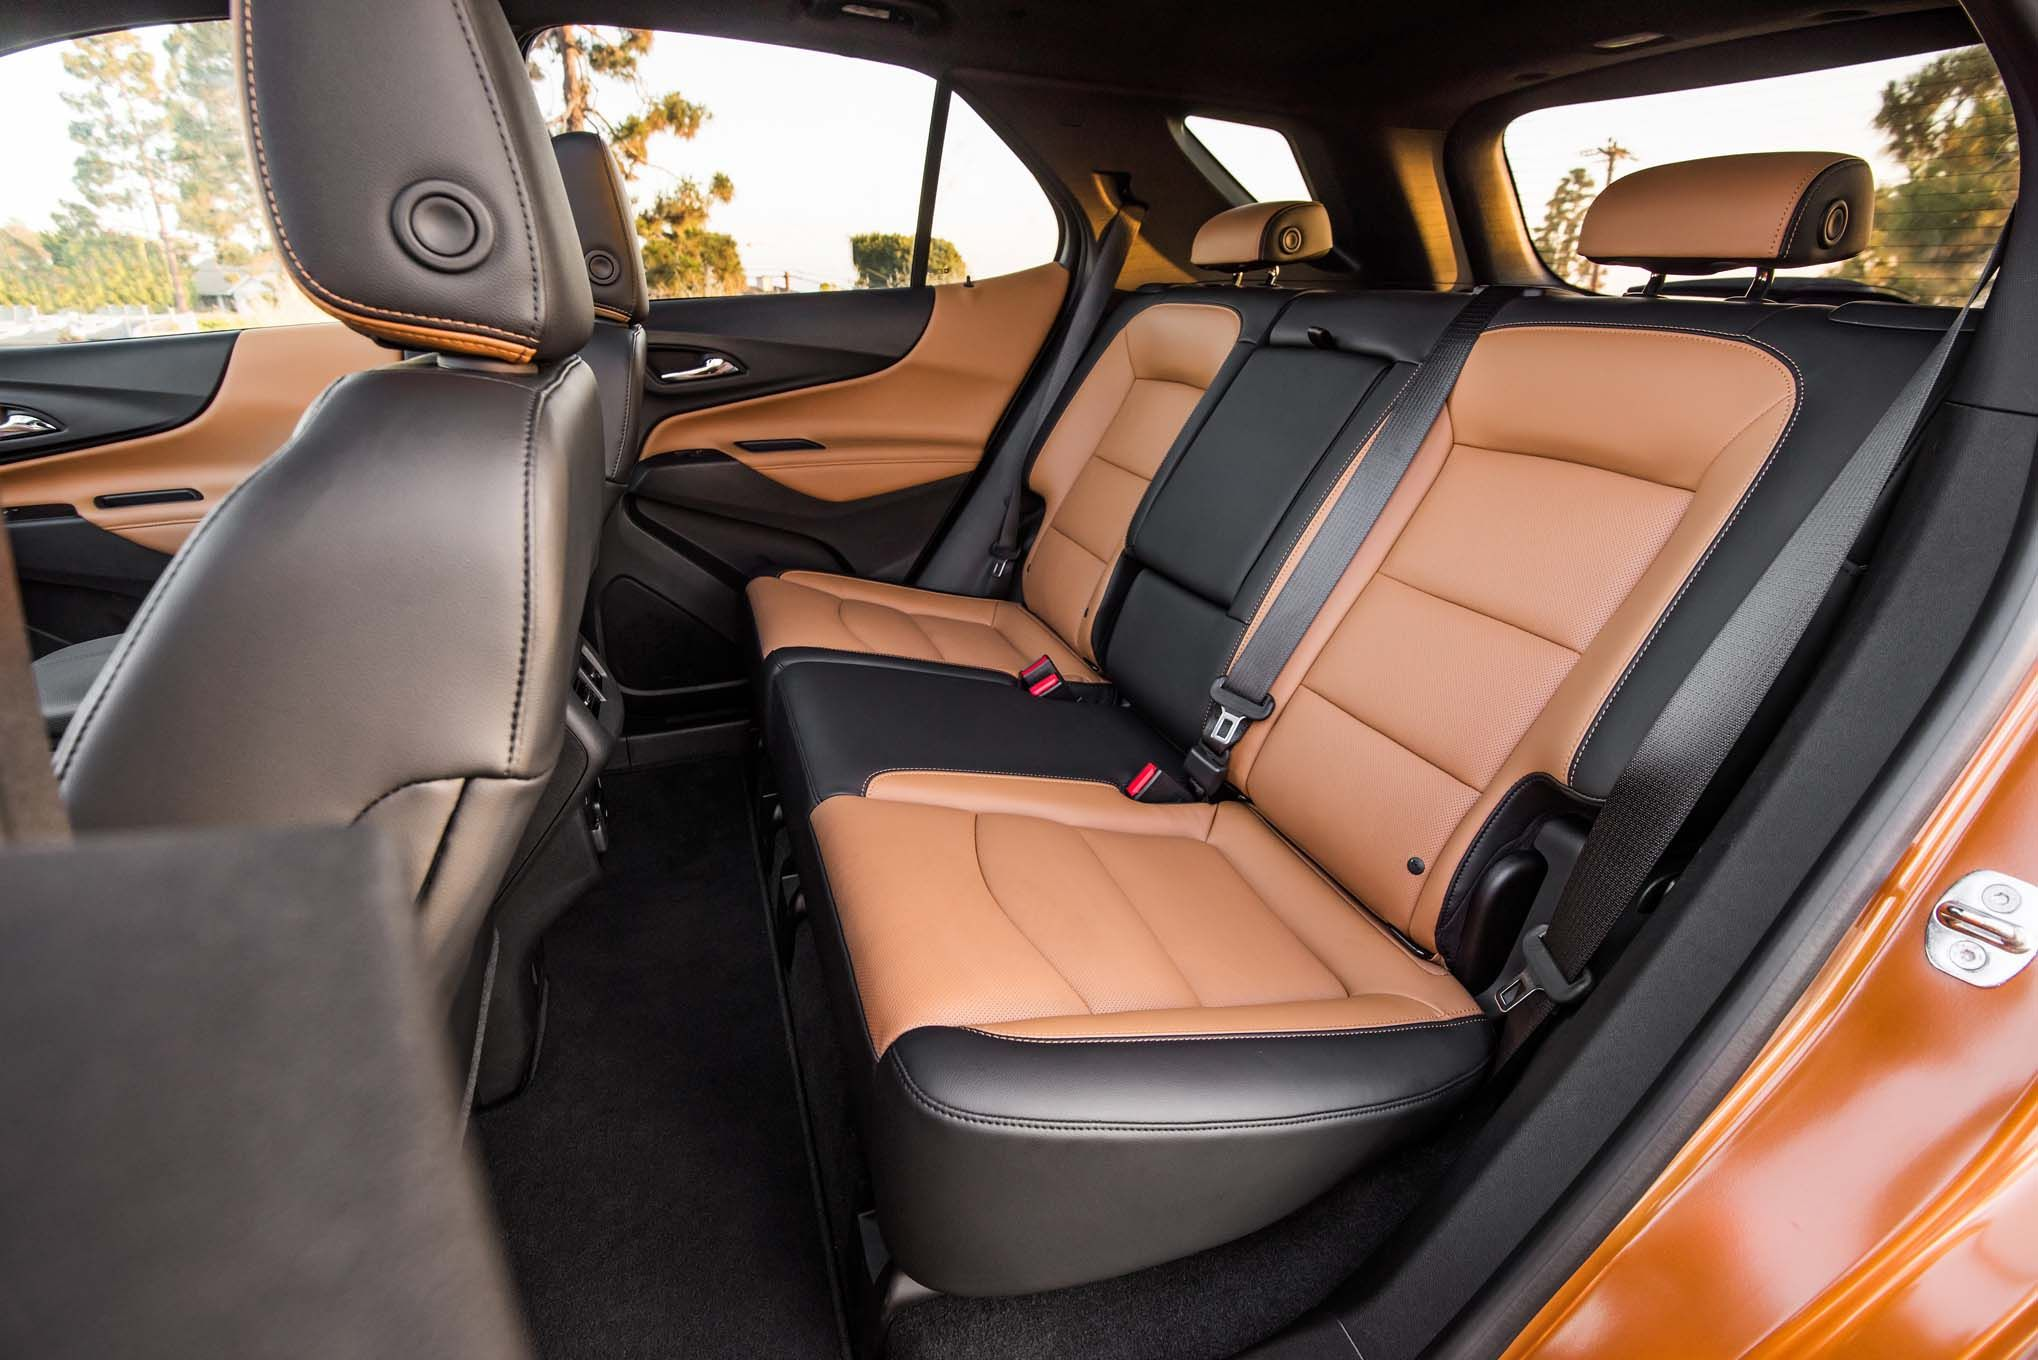 Image Result For Chevrolet Equinox Seat Covers With Images